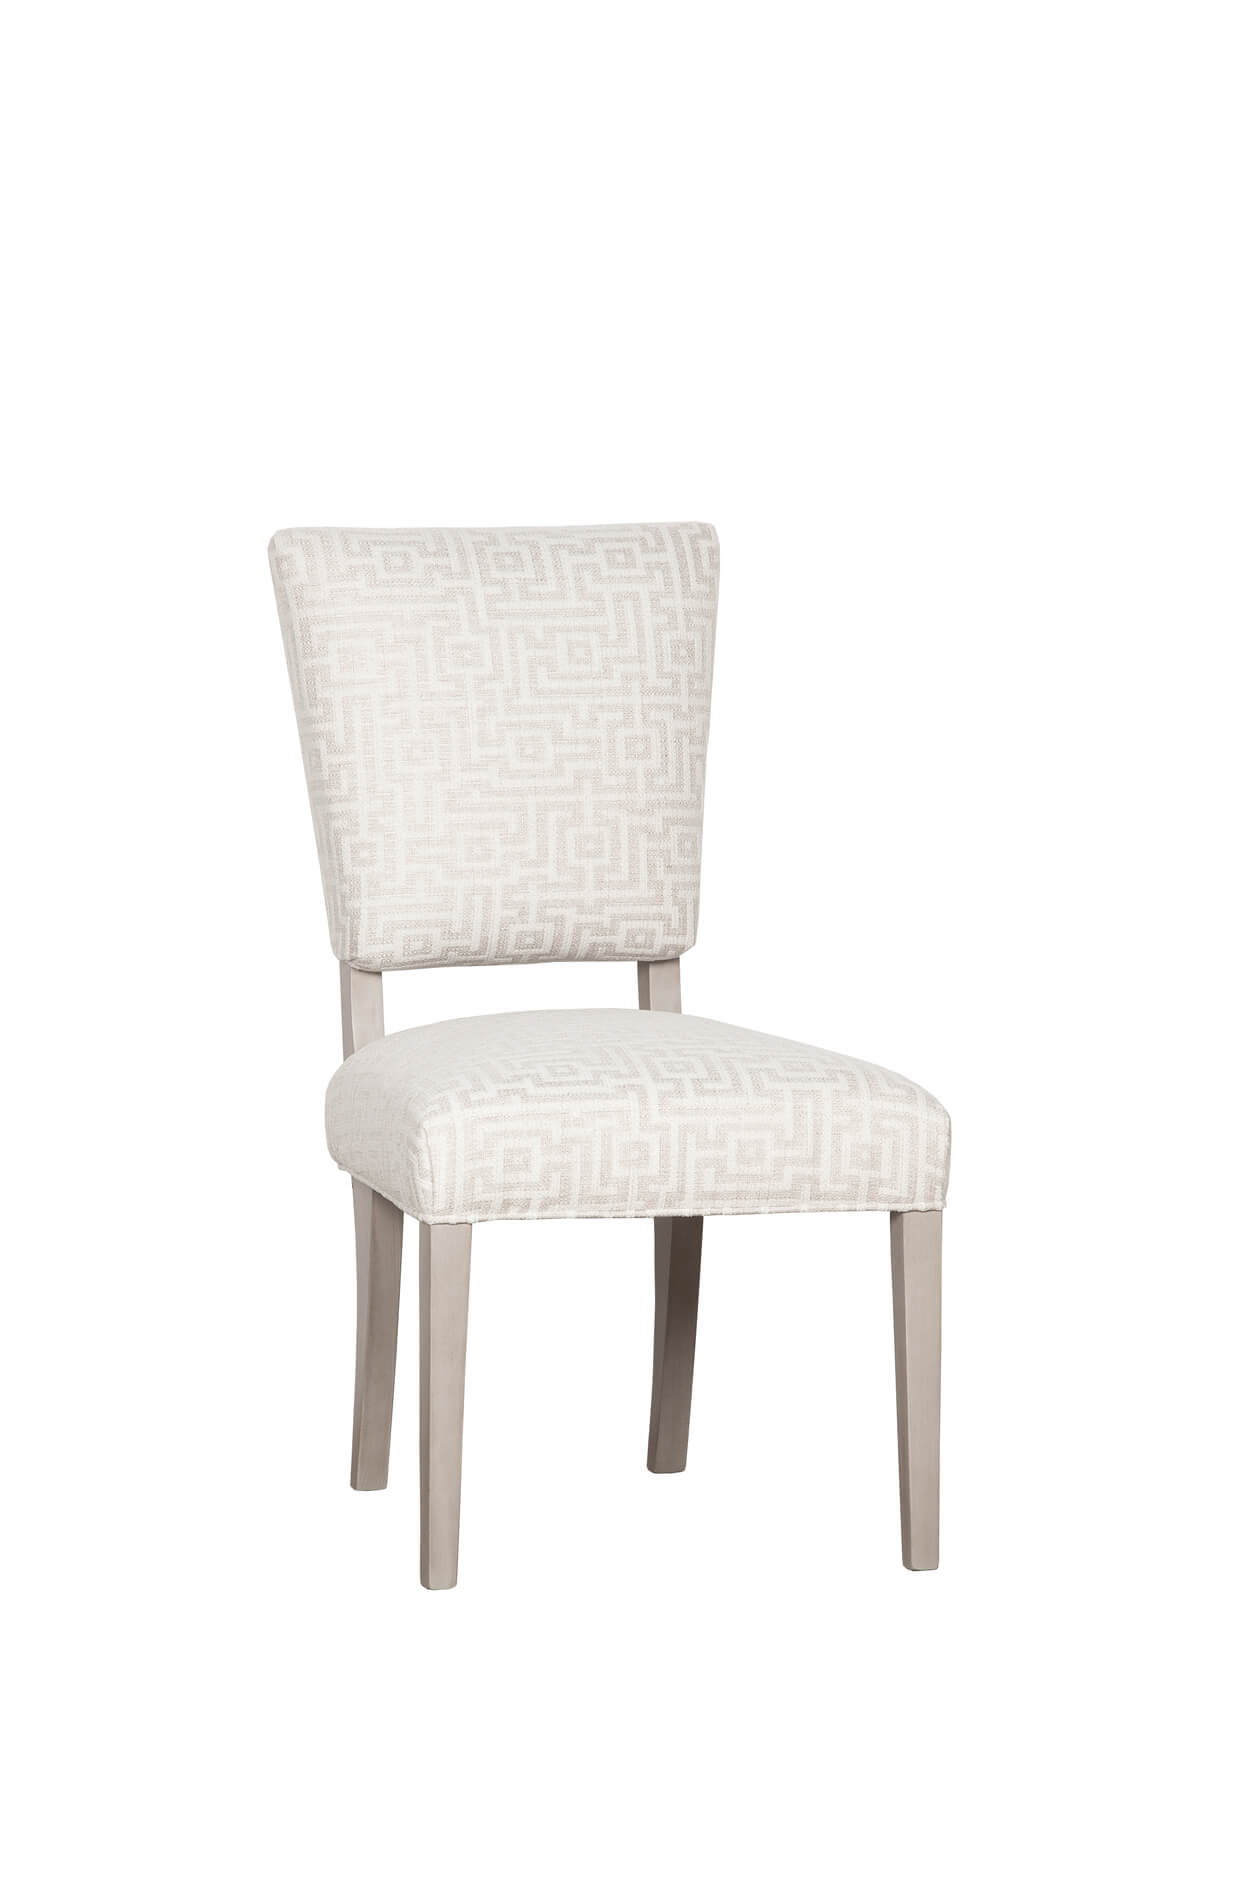 Fairfield's Hemsdale Upholstered Dining Chair